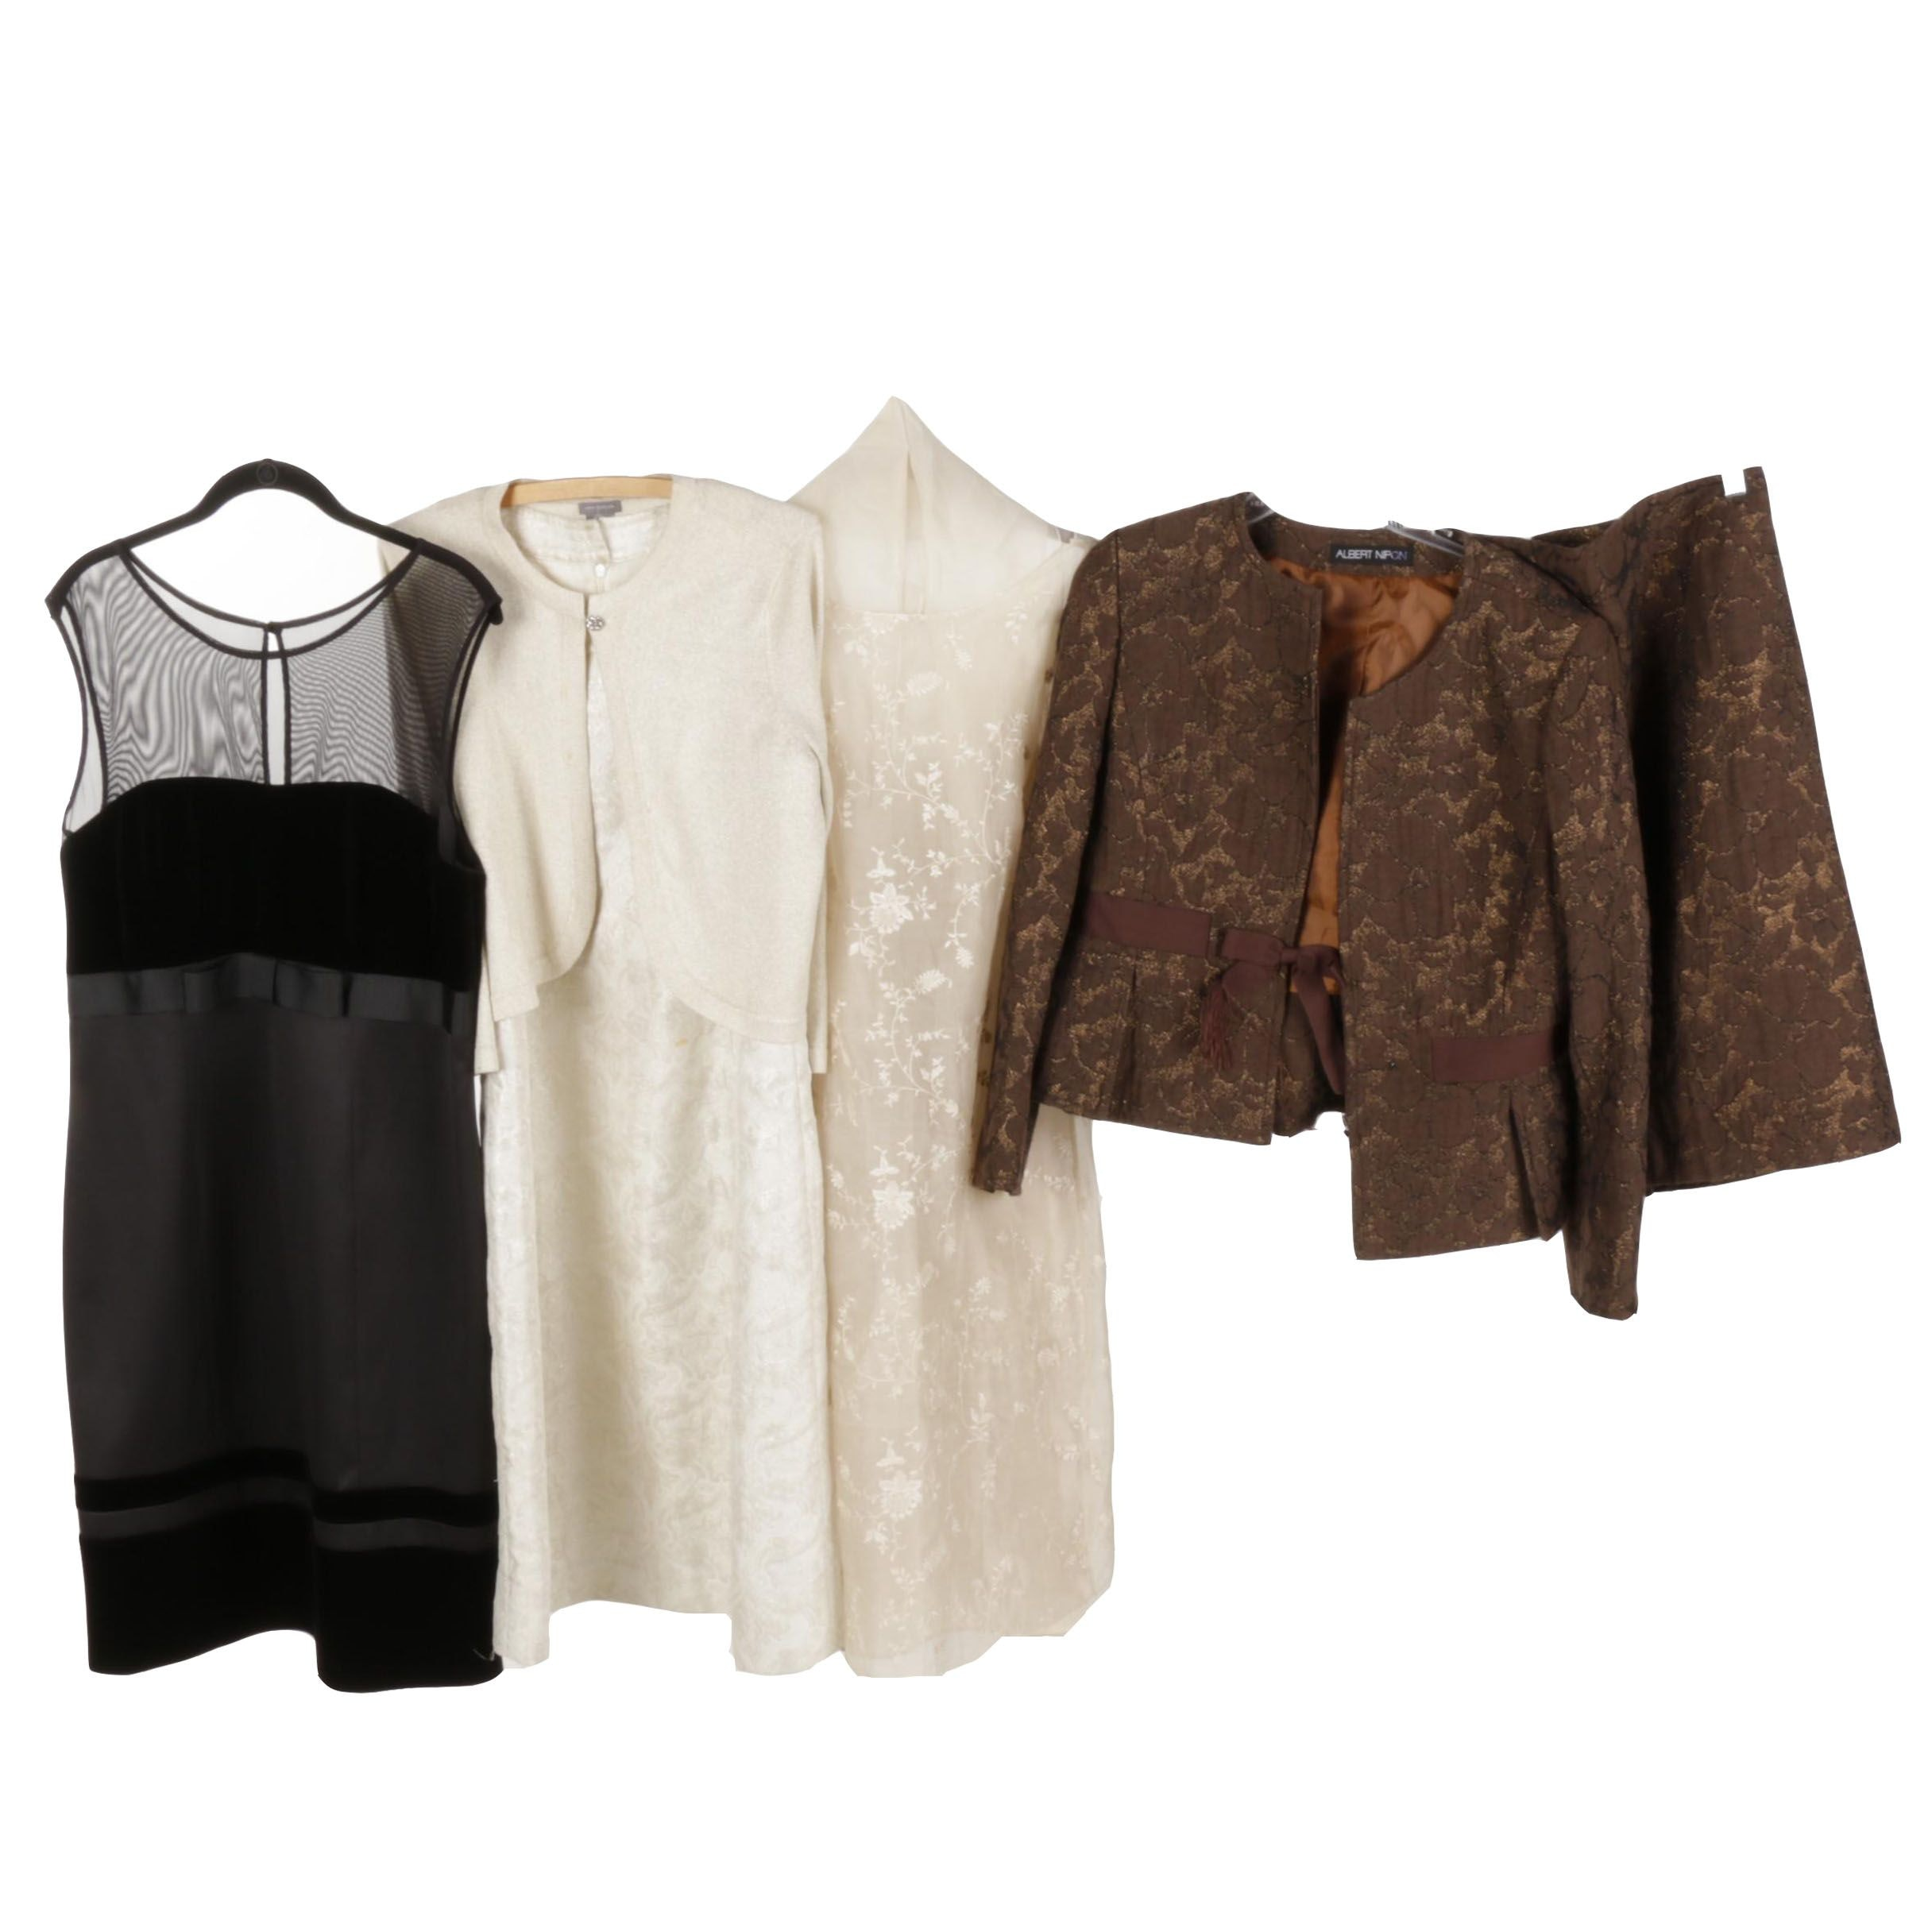 Women's Dresses and Jackets